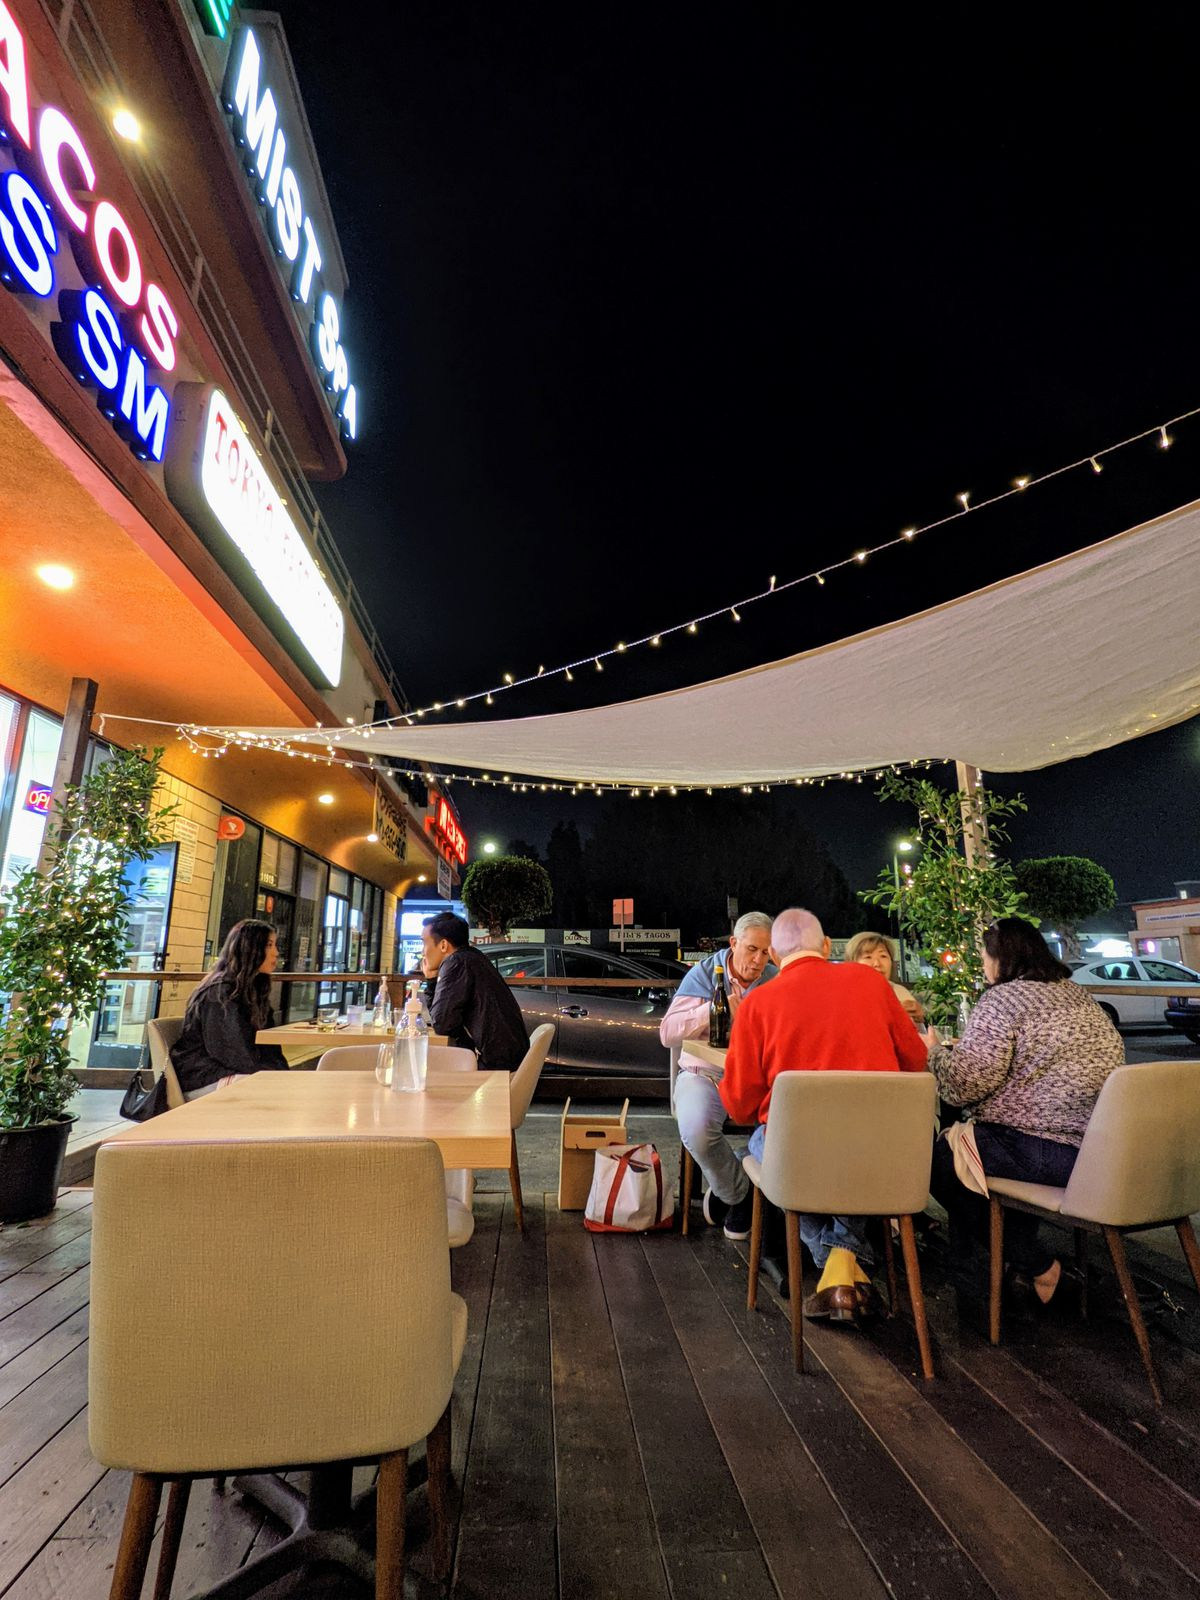 Kato's outdoor dining area, which seats fewer than 20 people